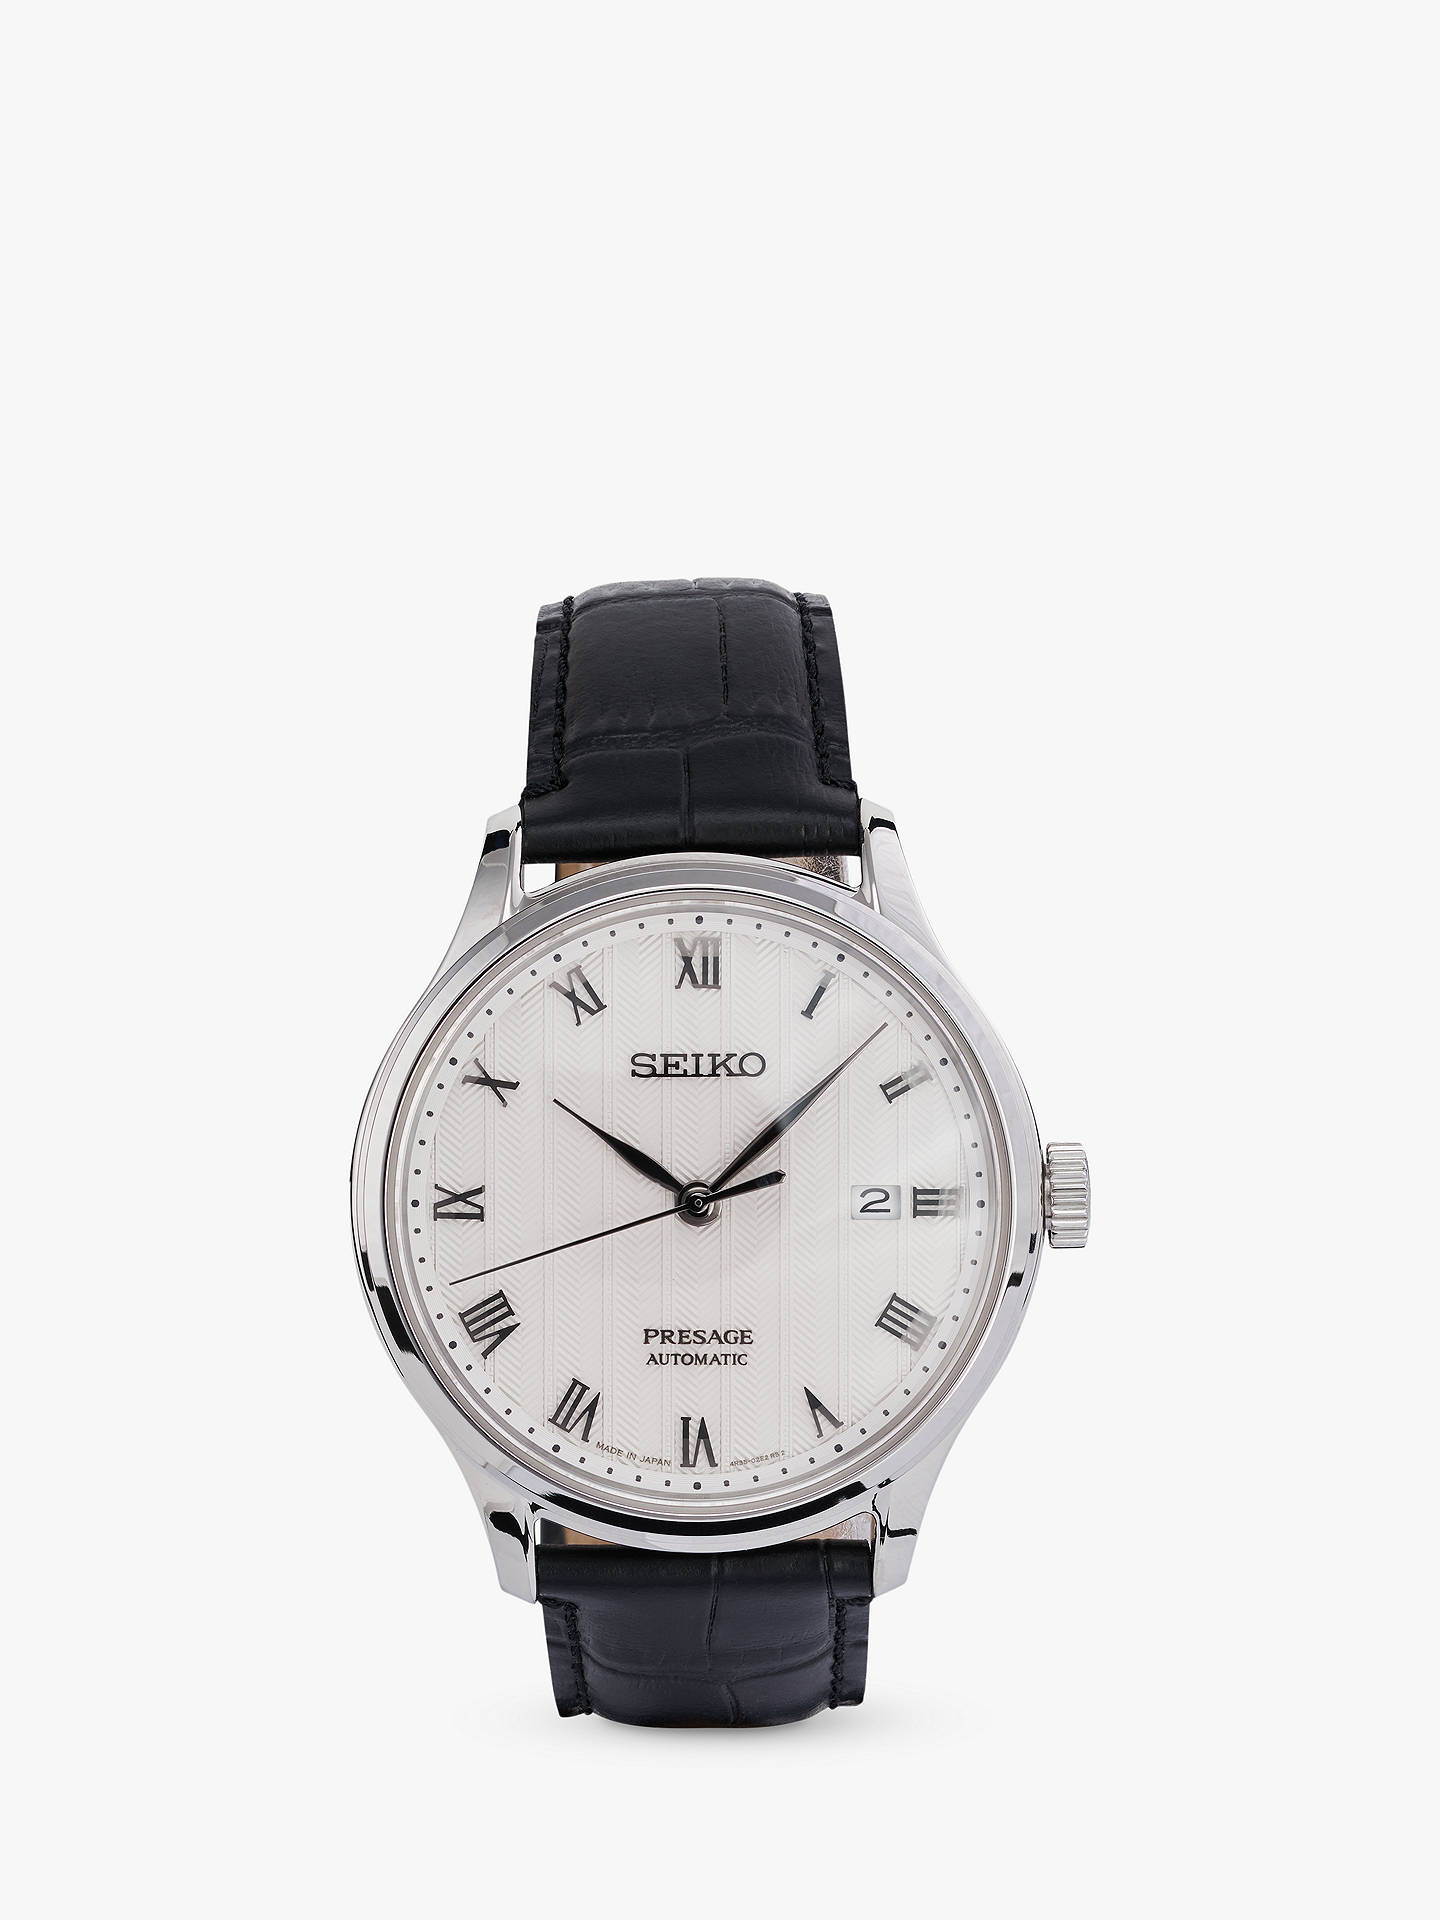 14577ab1d Buy Seiko SRPC83J1 Men's Presage Automatic Date Leather Strap Watch, Black/ White Online at ...